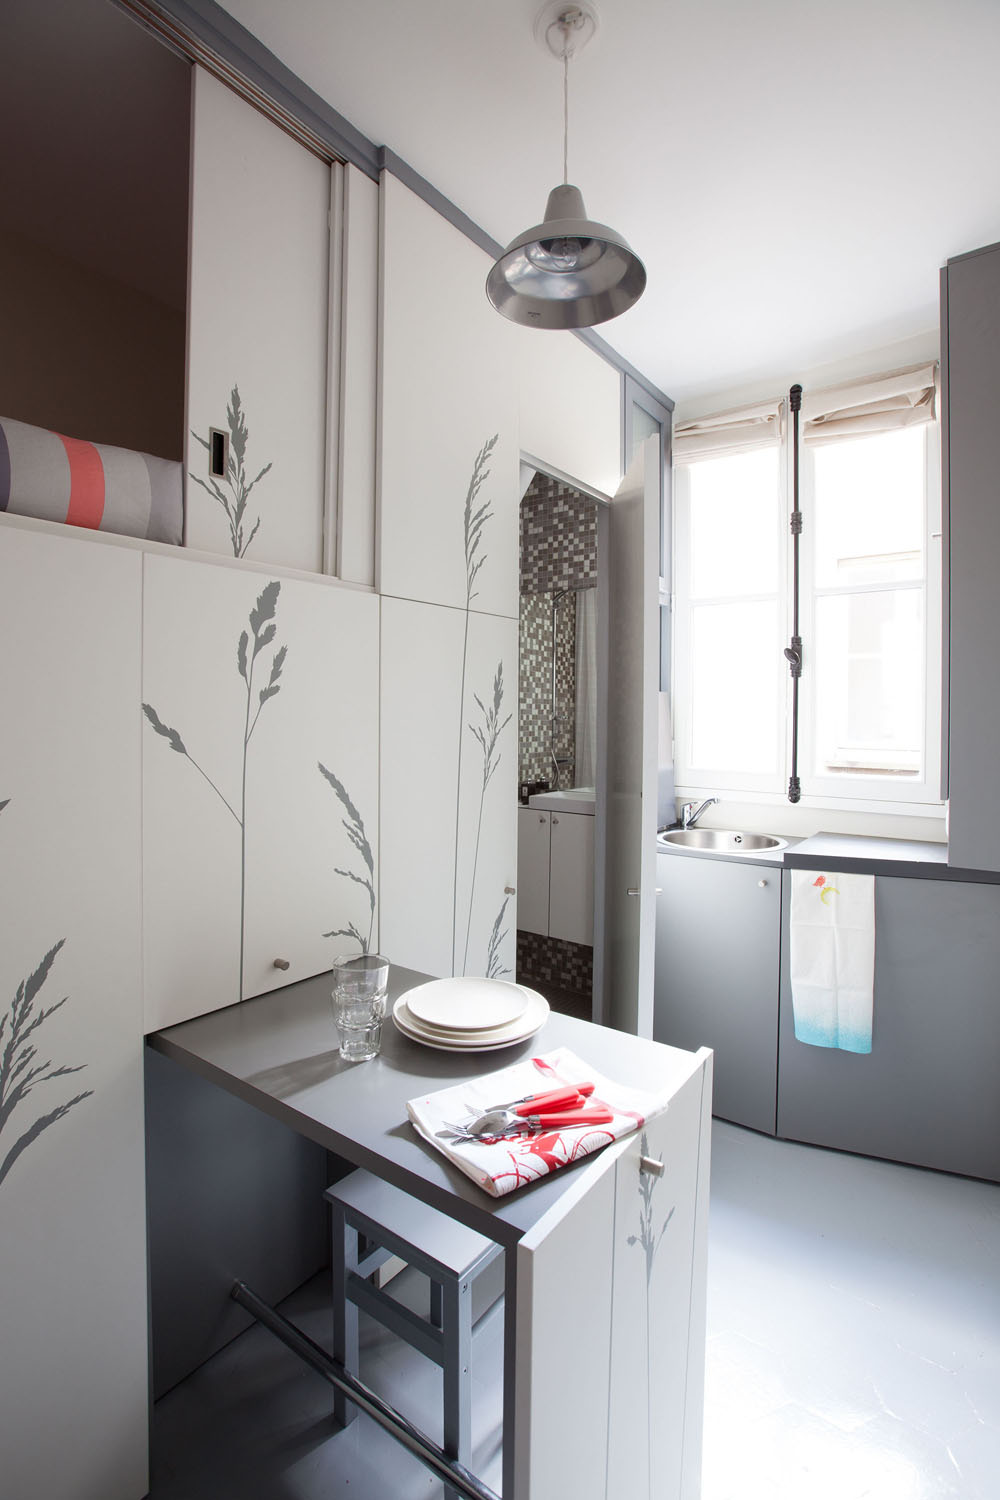 Compact Apartment In Paris by Kitoko Studio 7 Incredibly Small Apartment in Paris Reduces Functions to Minimum